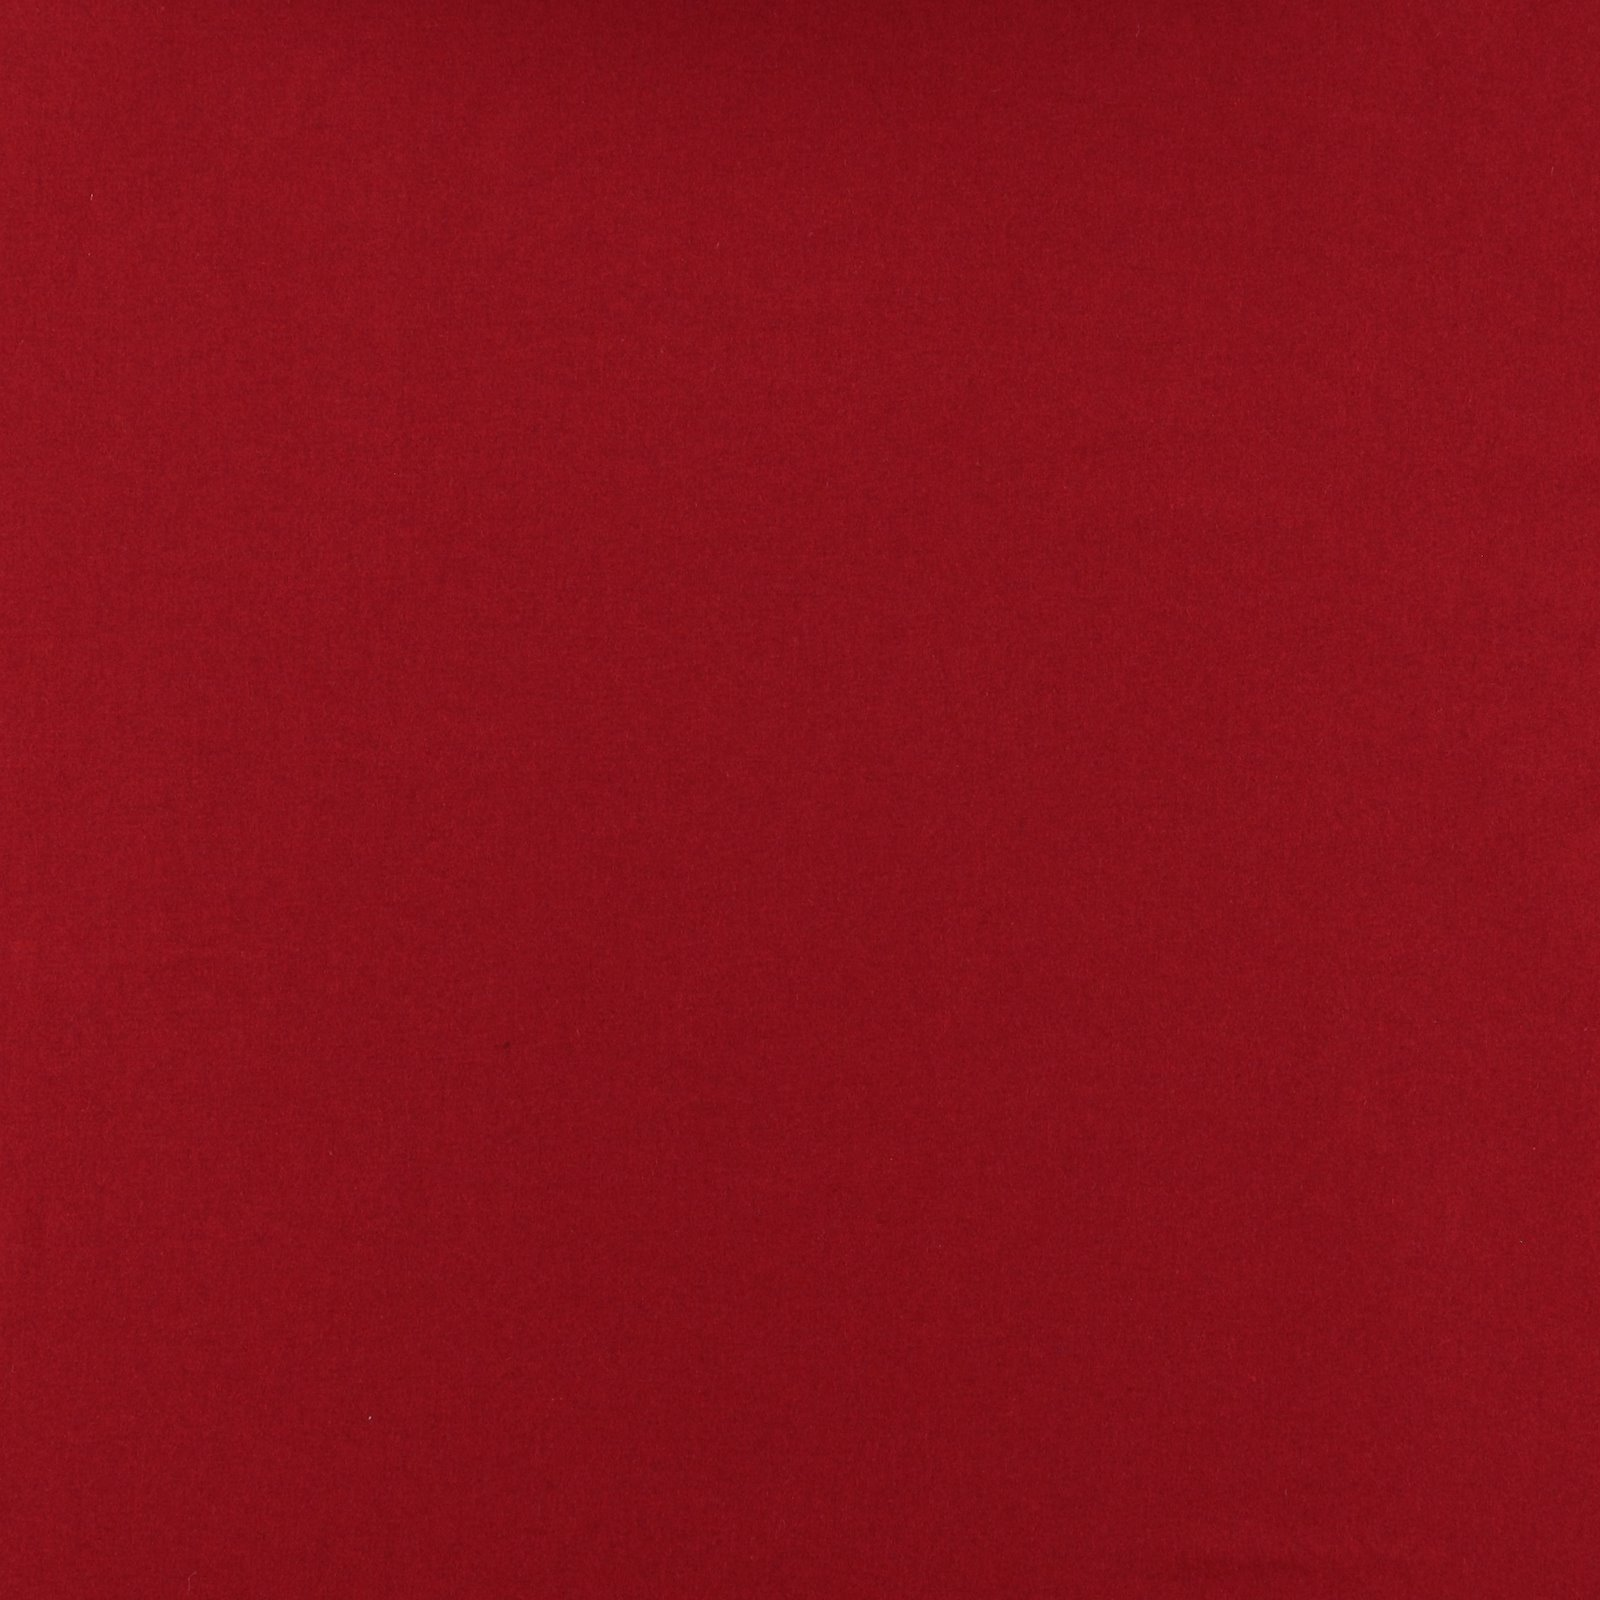 Woven wool red 300185_pack_solid